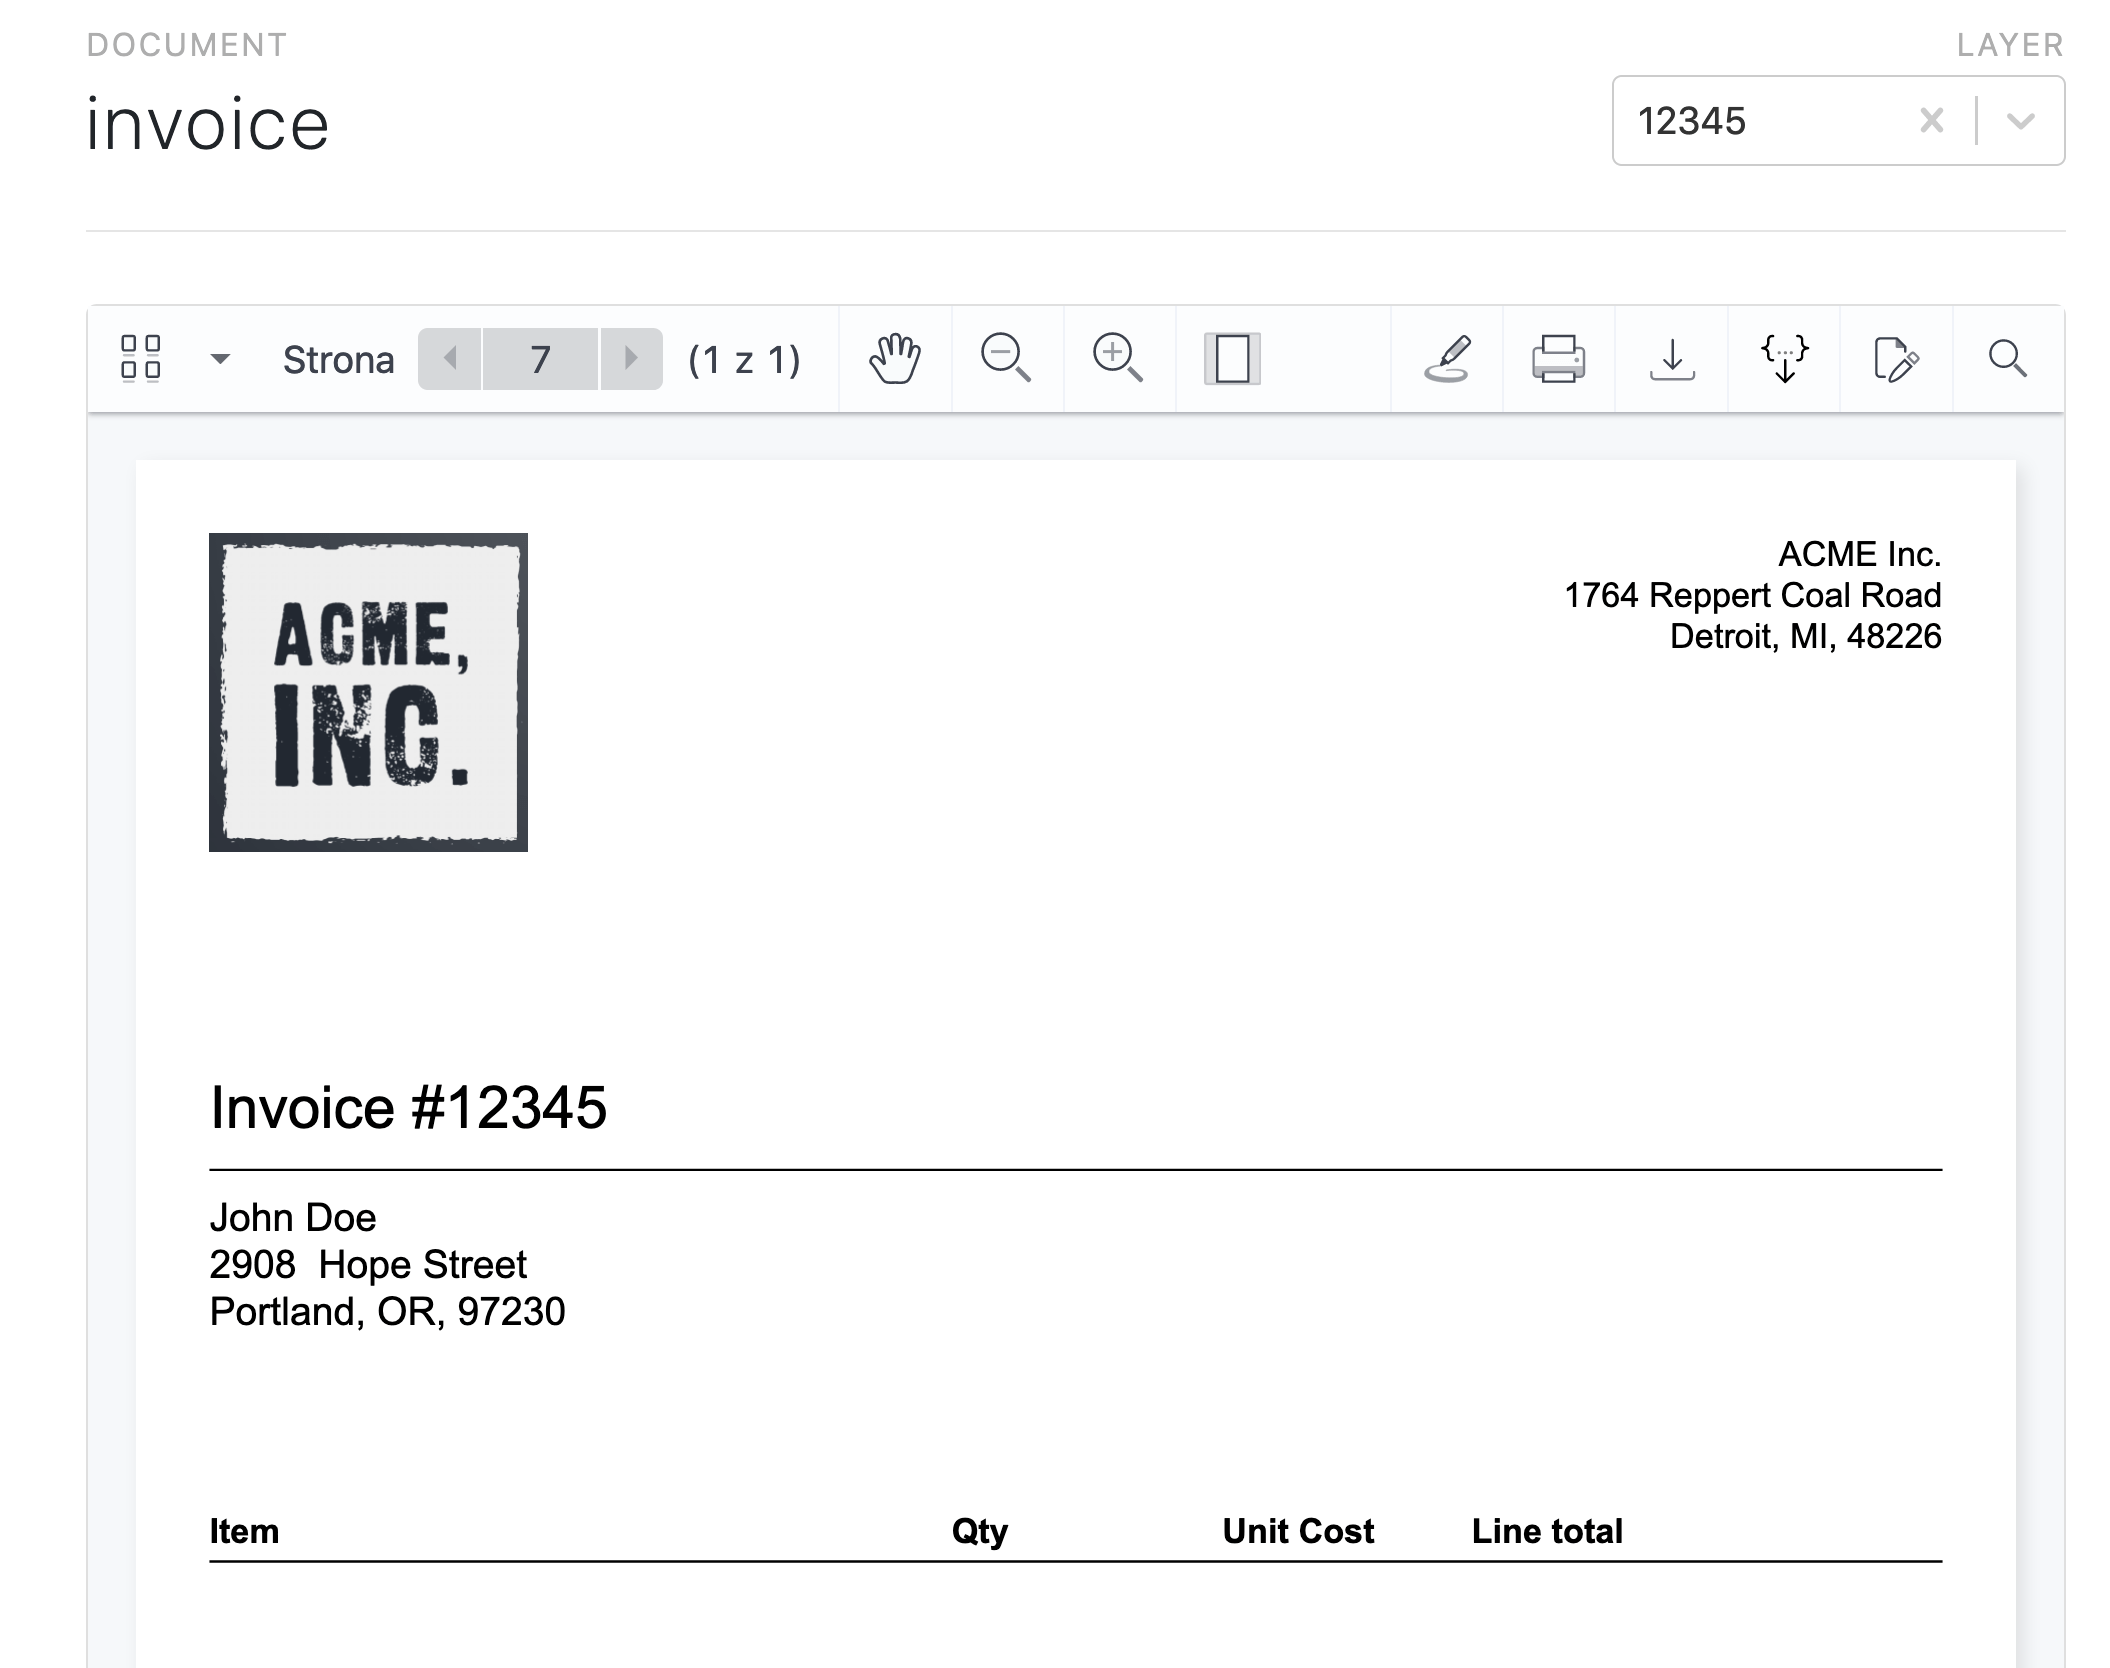 Invoice number and customer details filled-in